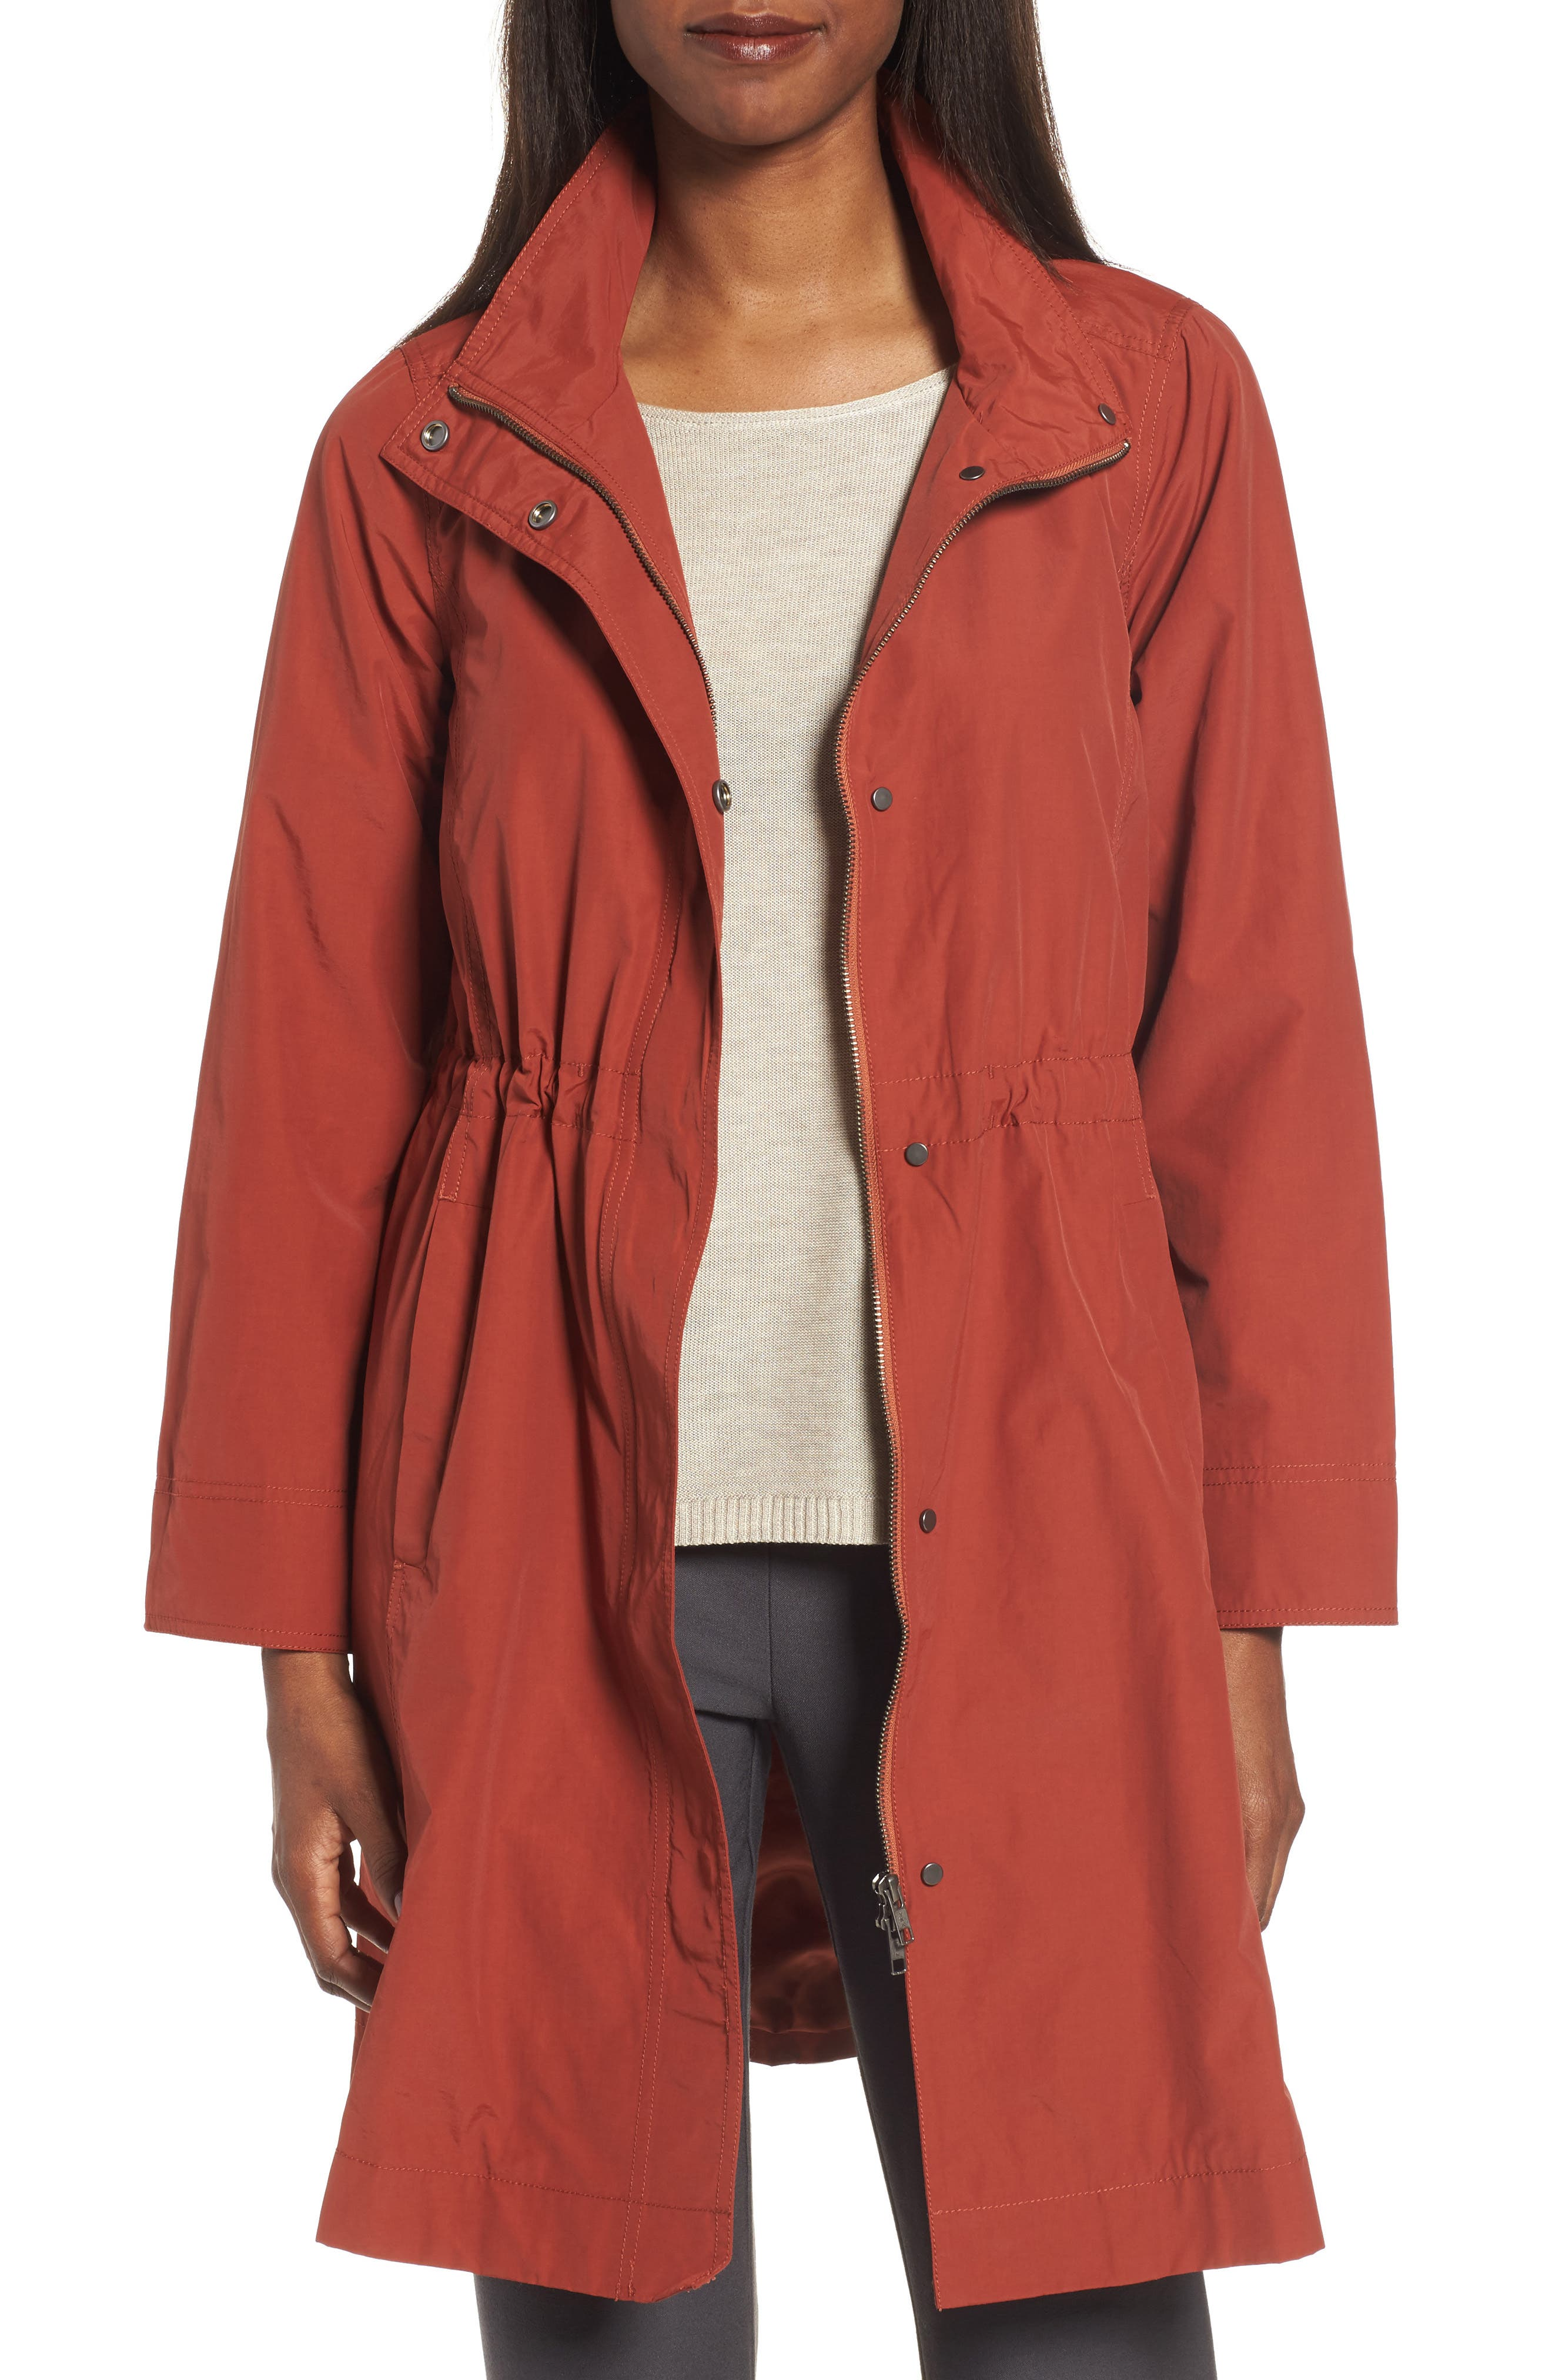 Alternate Image 1 Selected - Eileen Fisher Long Organic Cotton Blend Jacket